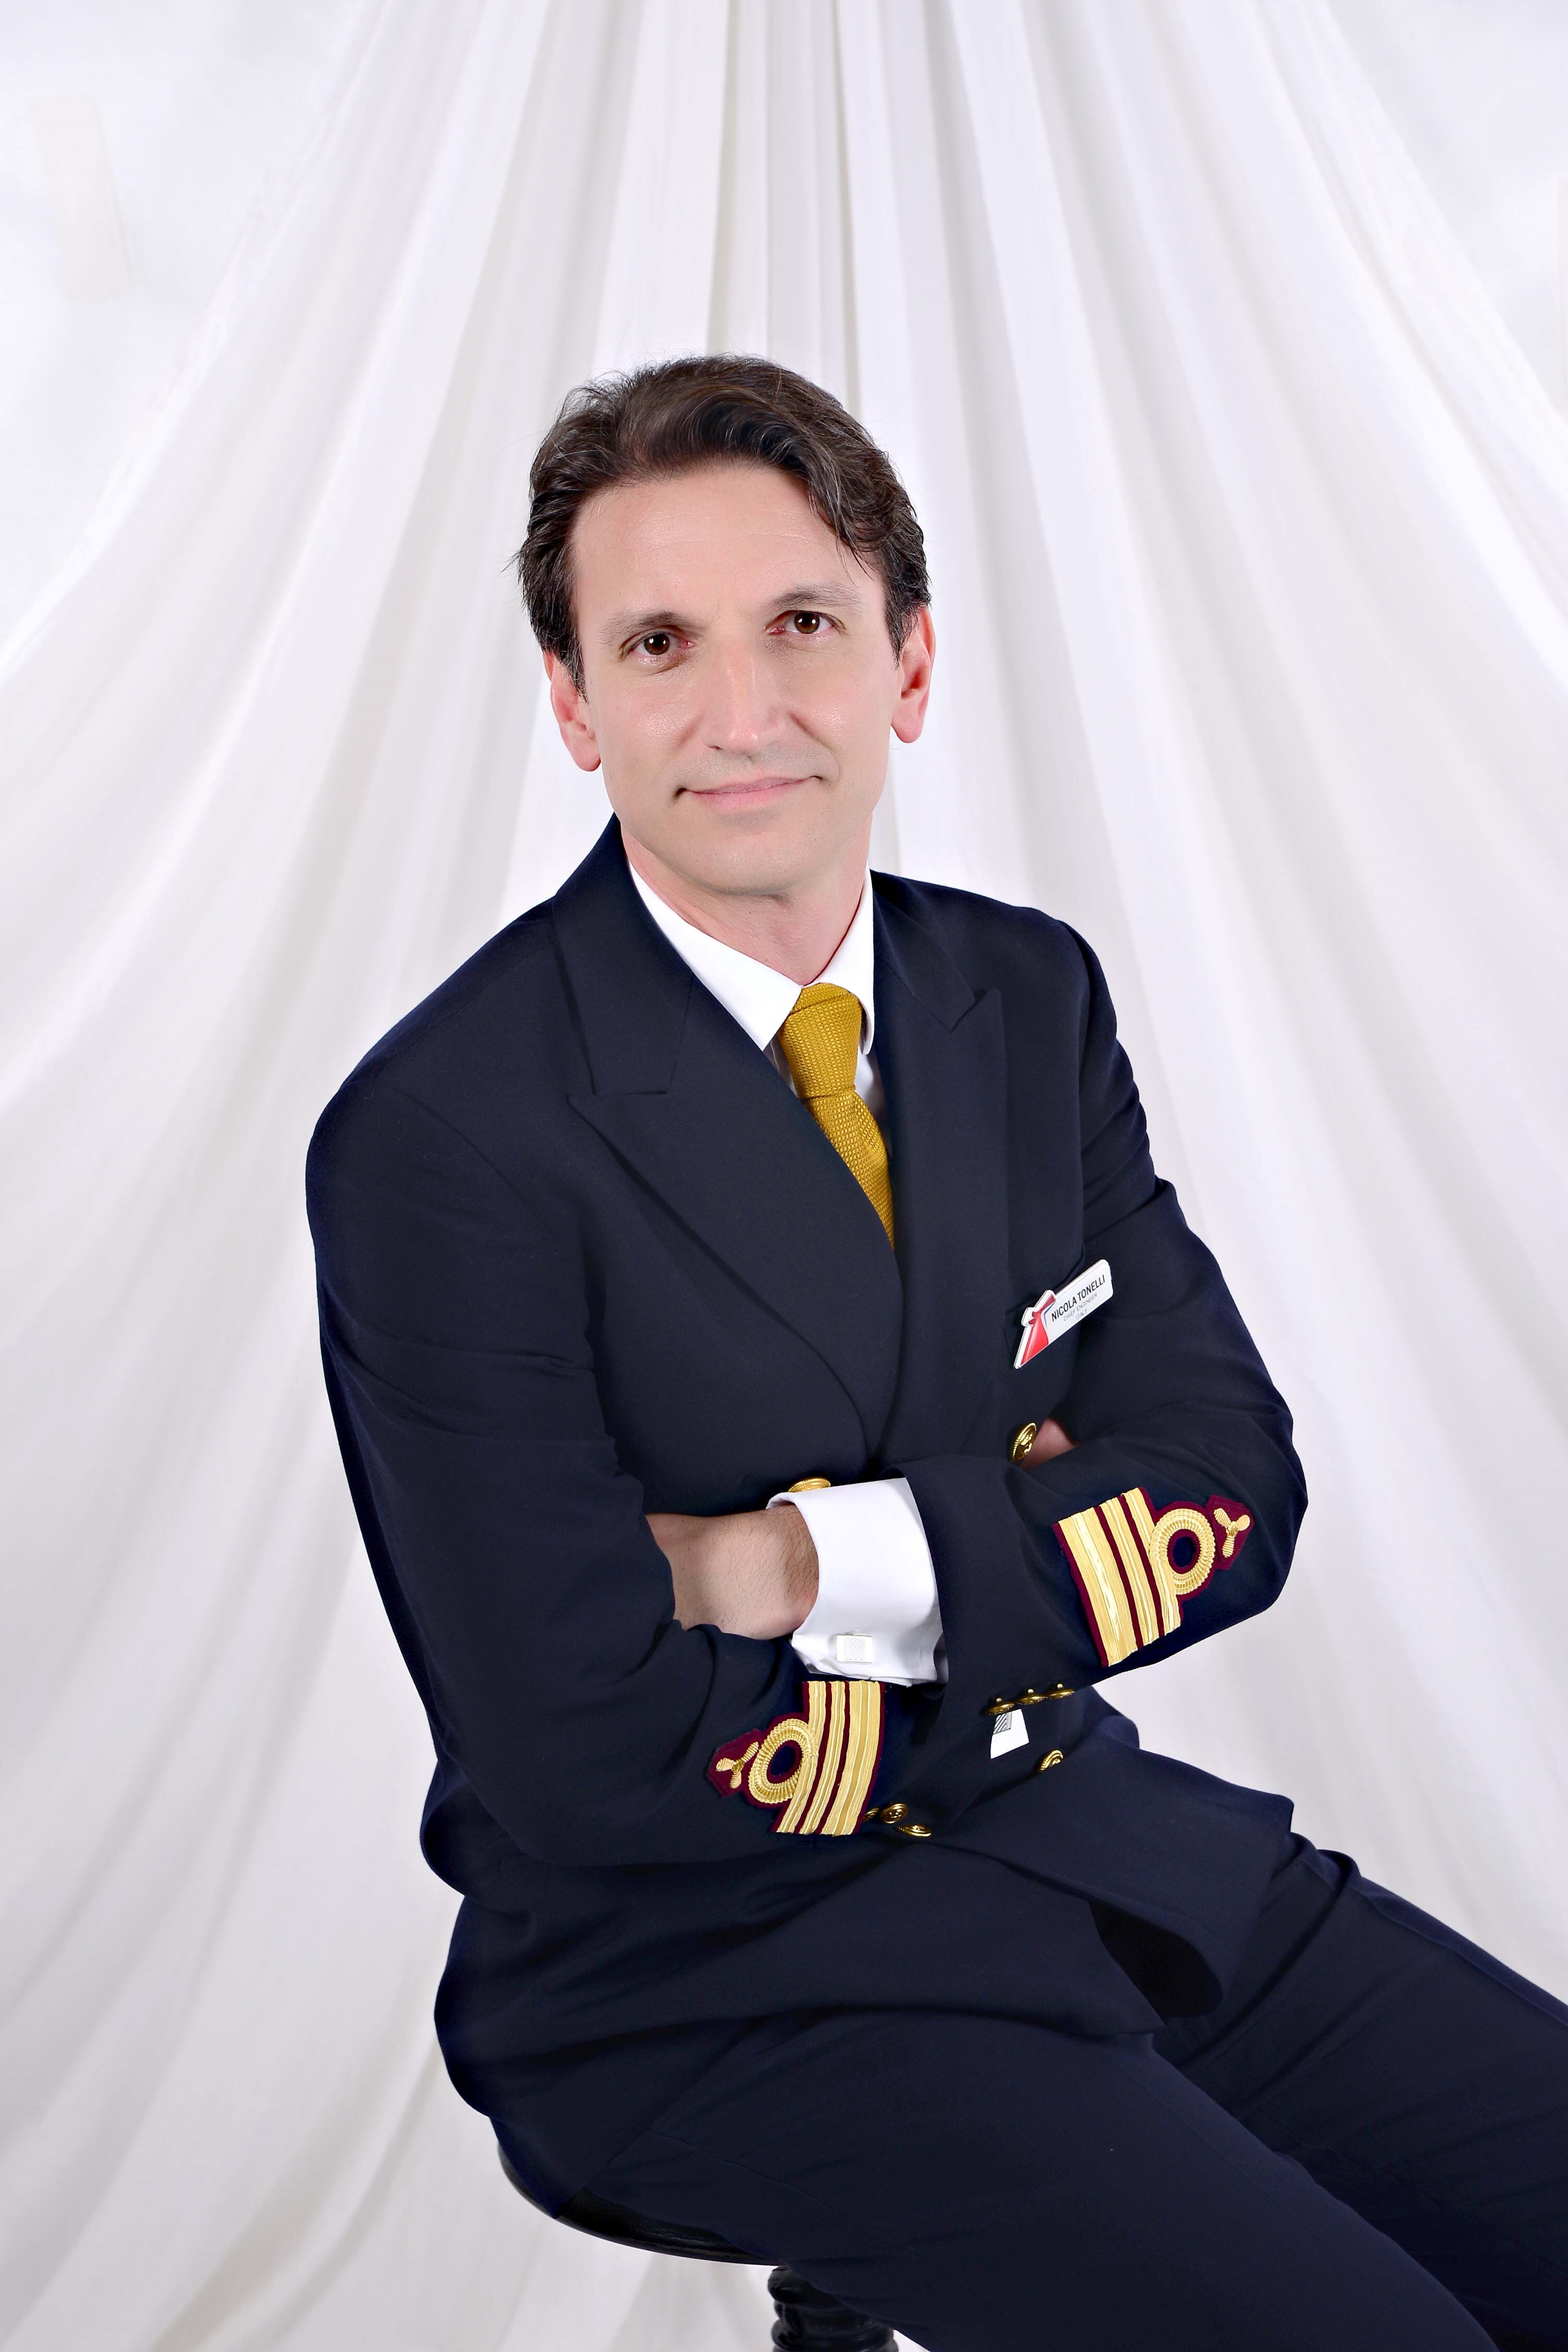 Carnival Cruise Line Announces Officers for Totally Transformed Carnival Sunrise